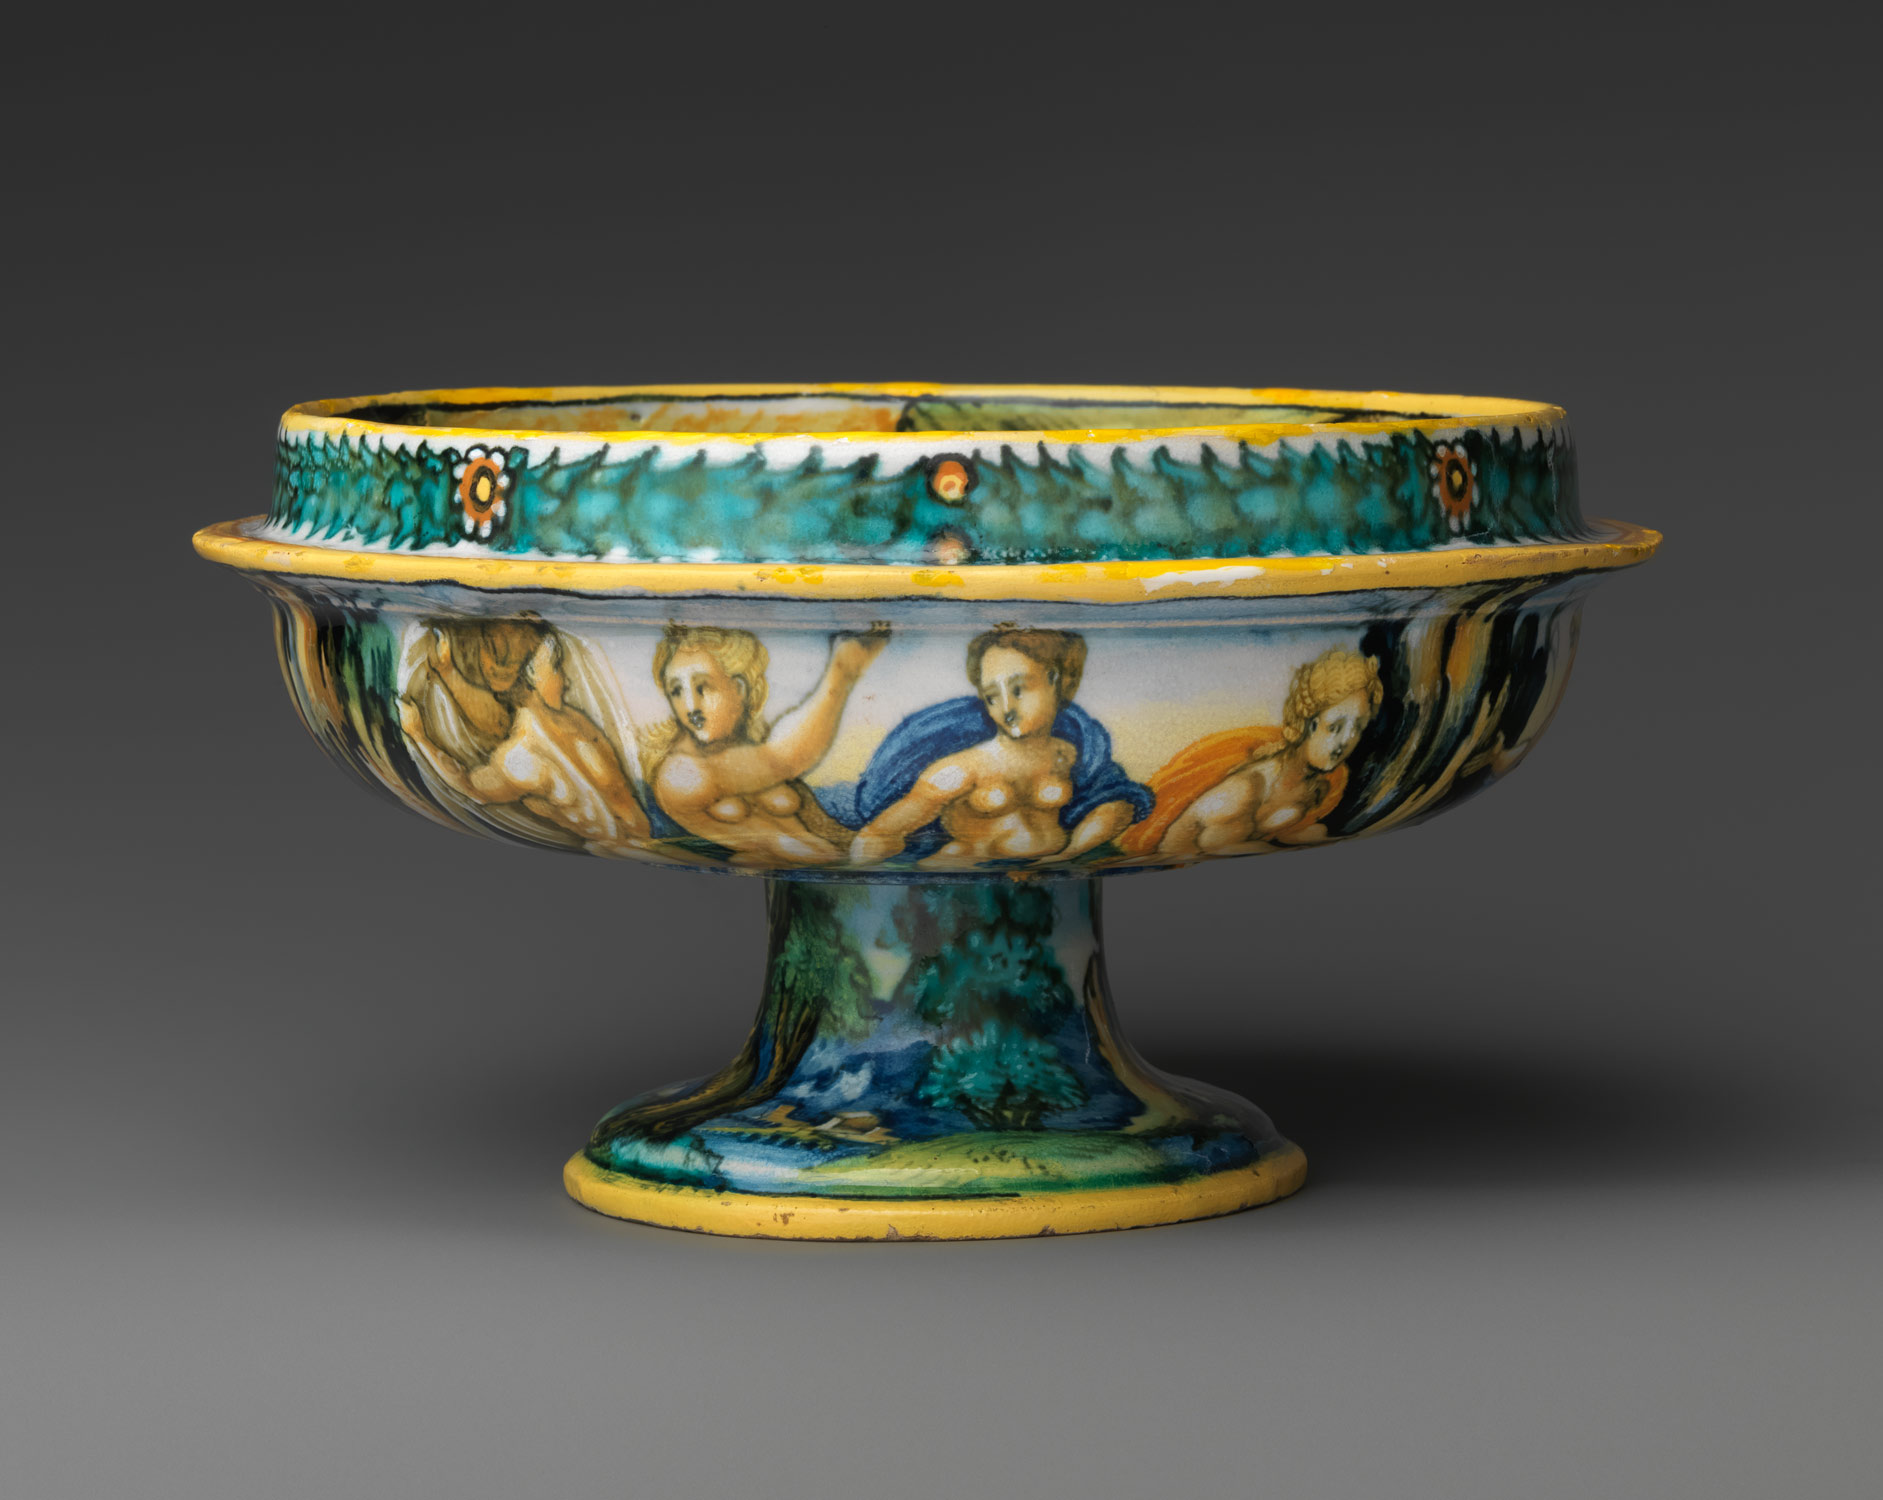 Bowl from a birth set with birth scene and Diana and Actaeon